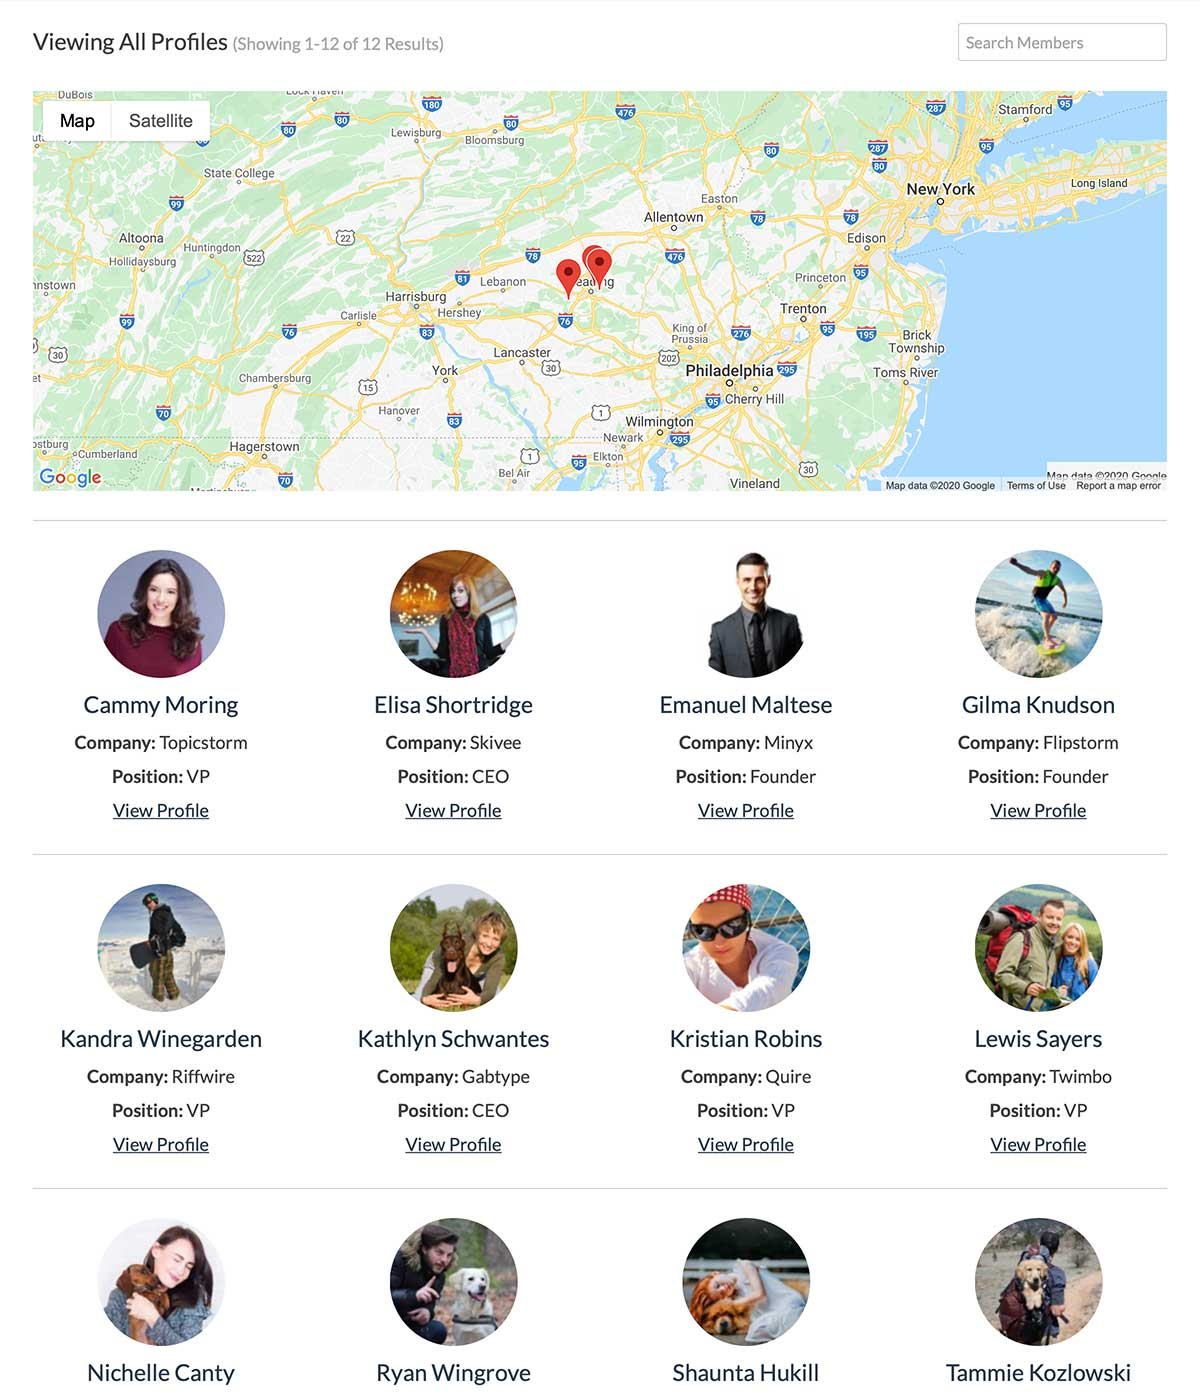 Membership Map for all members in the Member Directory frontend page